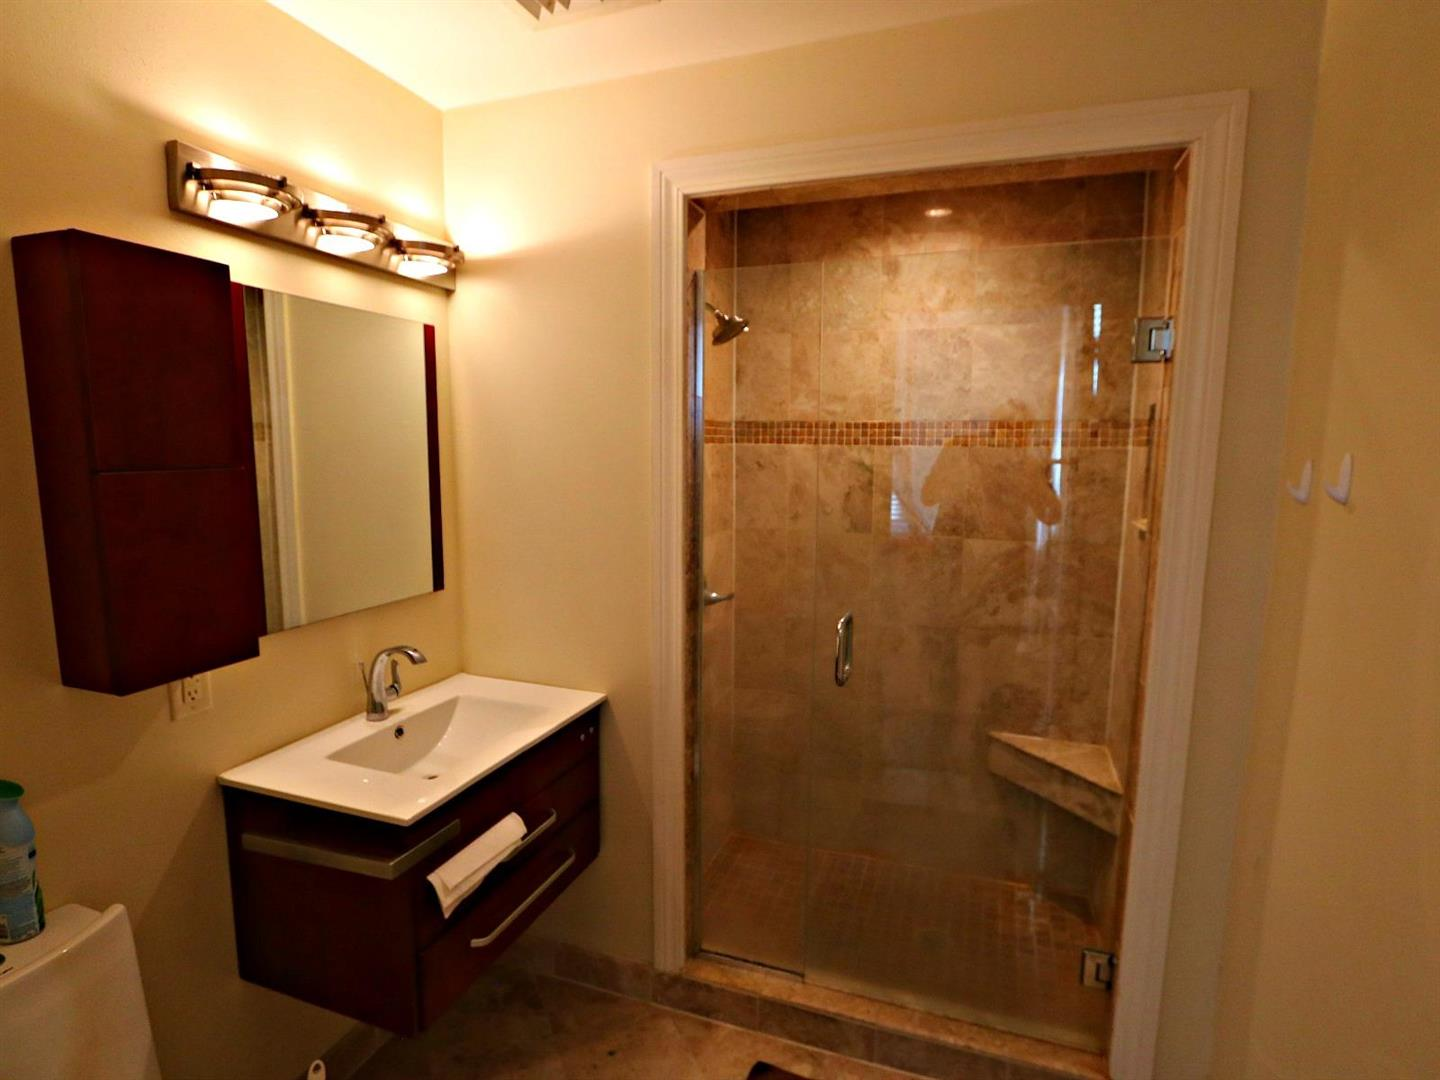 1224St.CharlesCondo314Bathroom.jpg